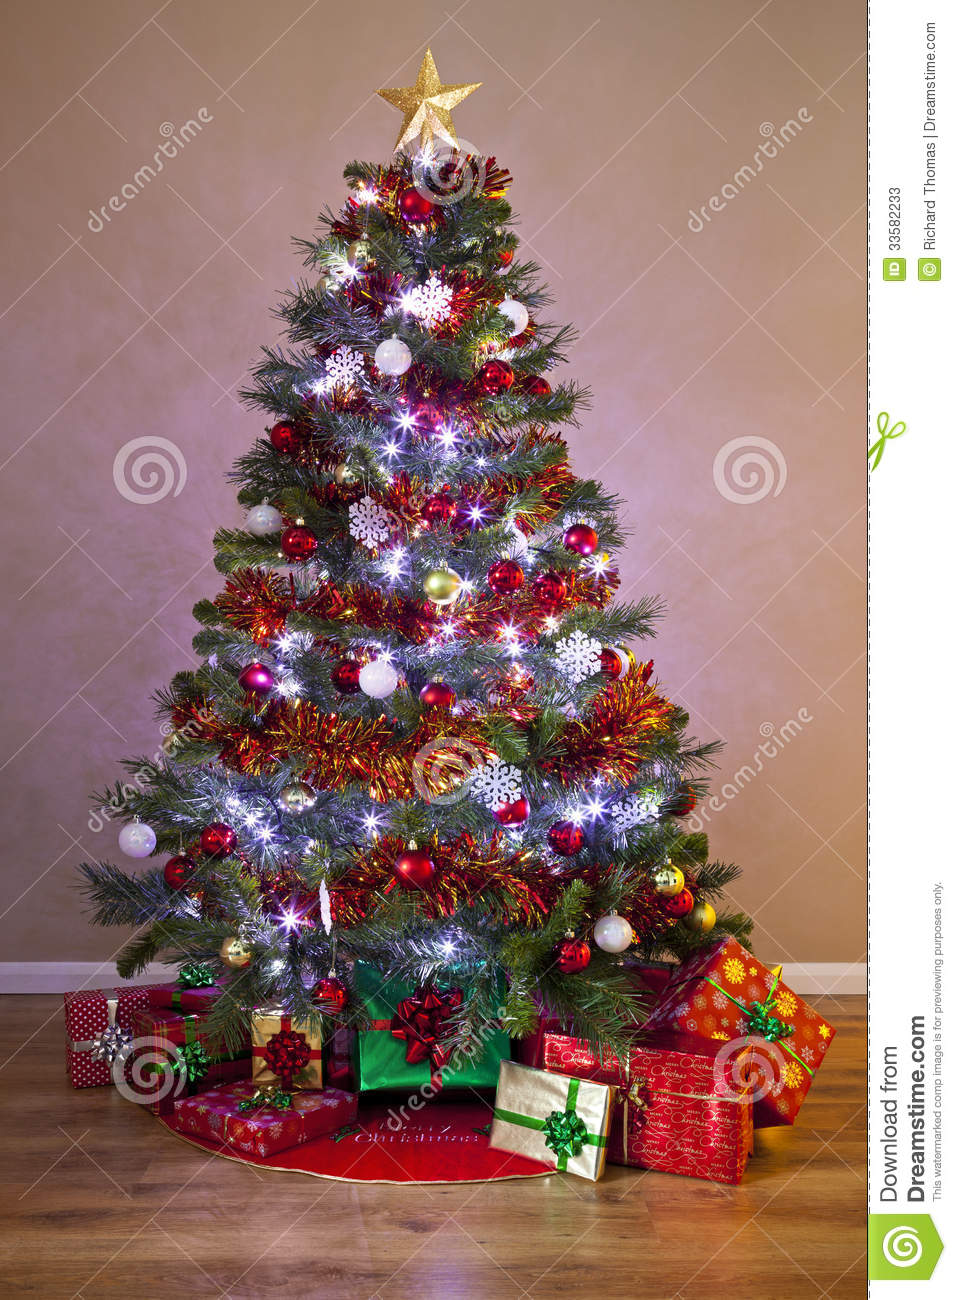 royalty free stock photo download decorated christmas tree with - Christmas Trees With Lights